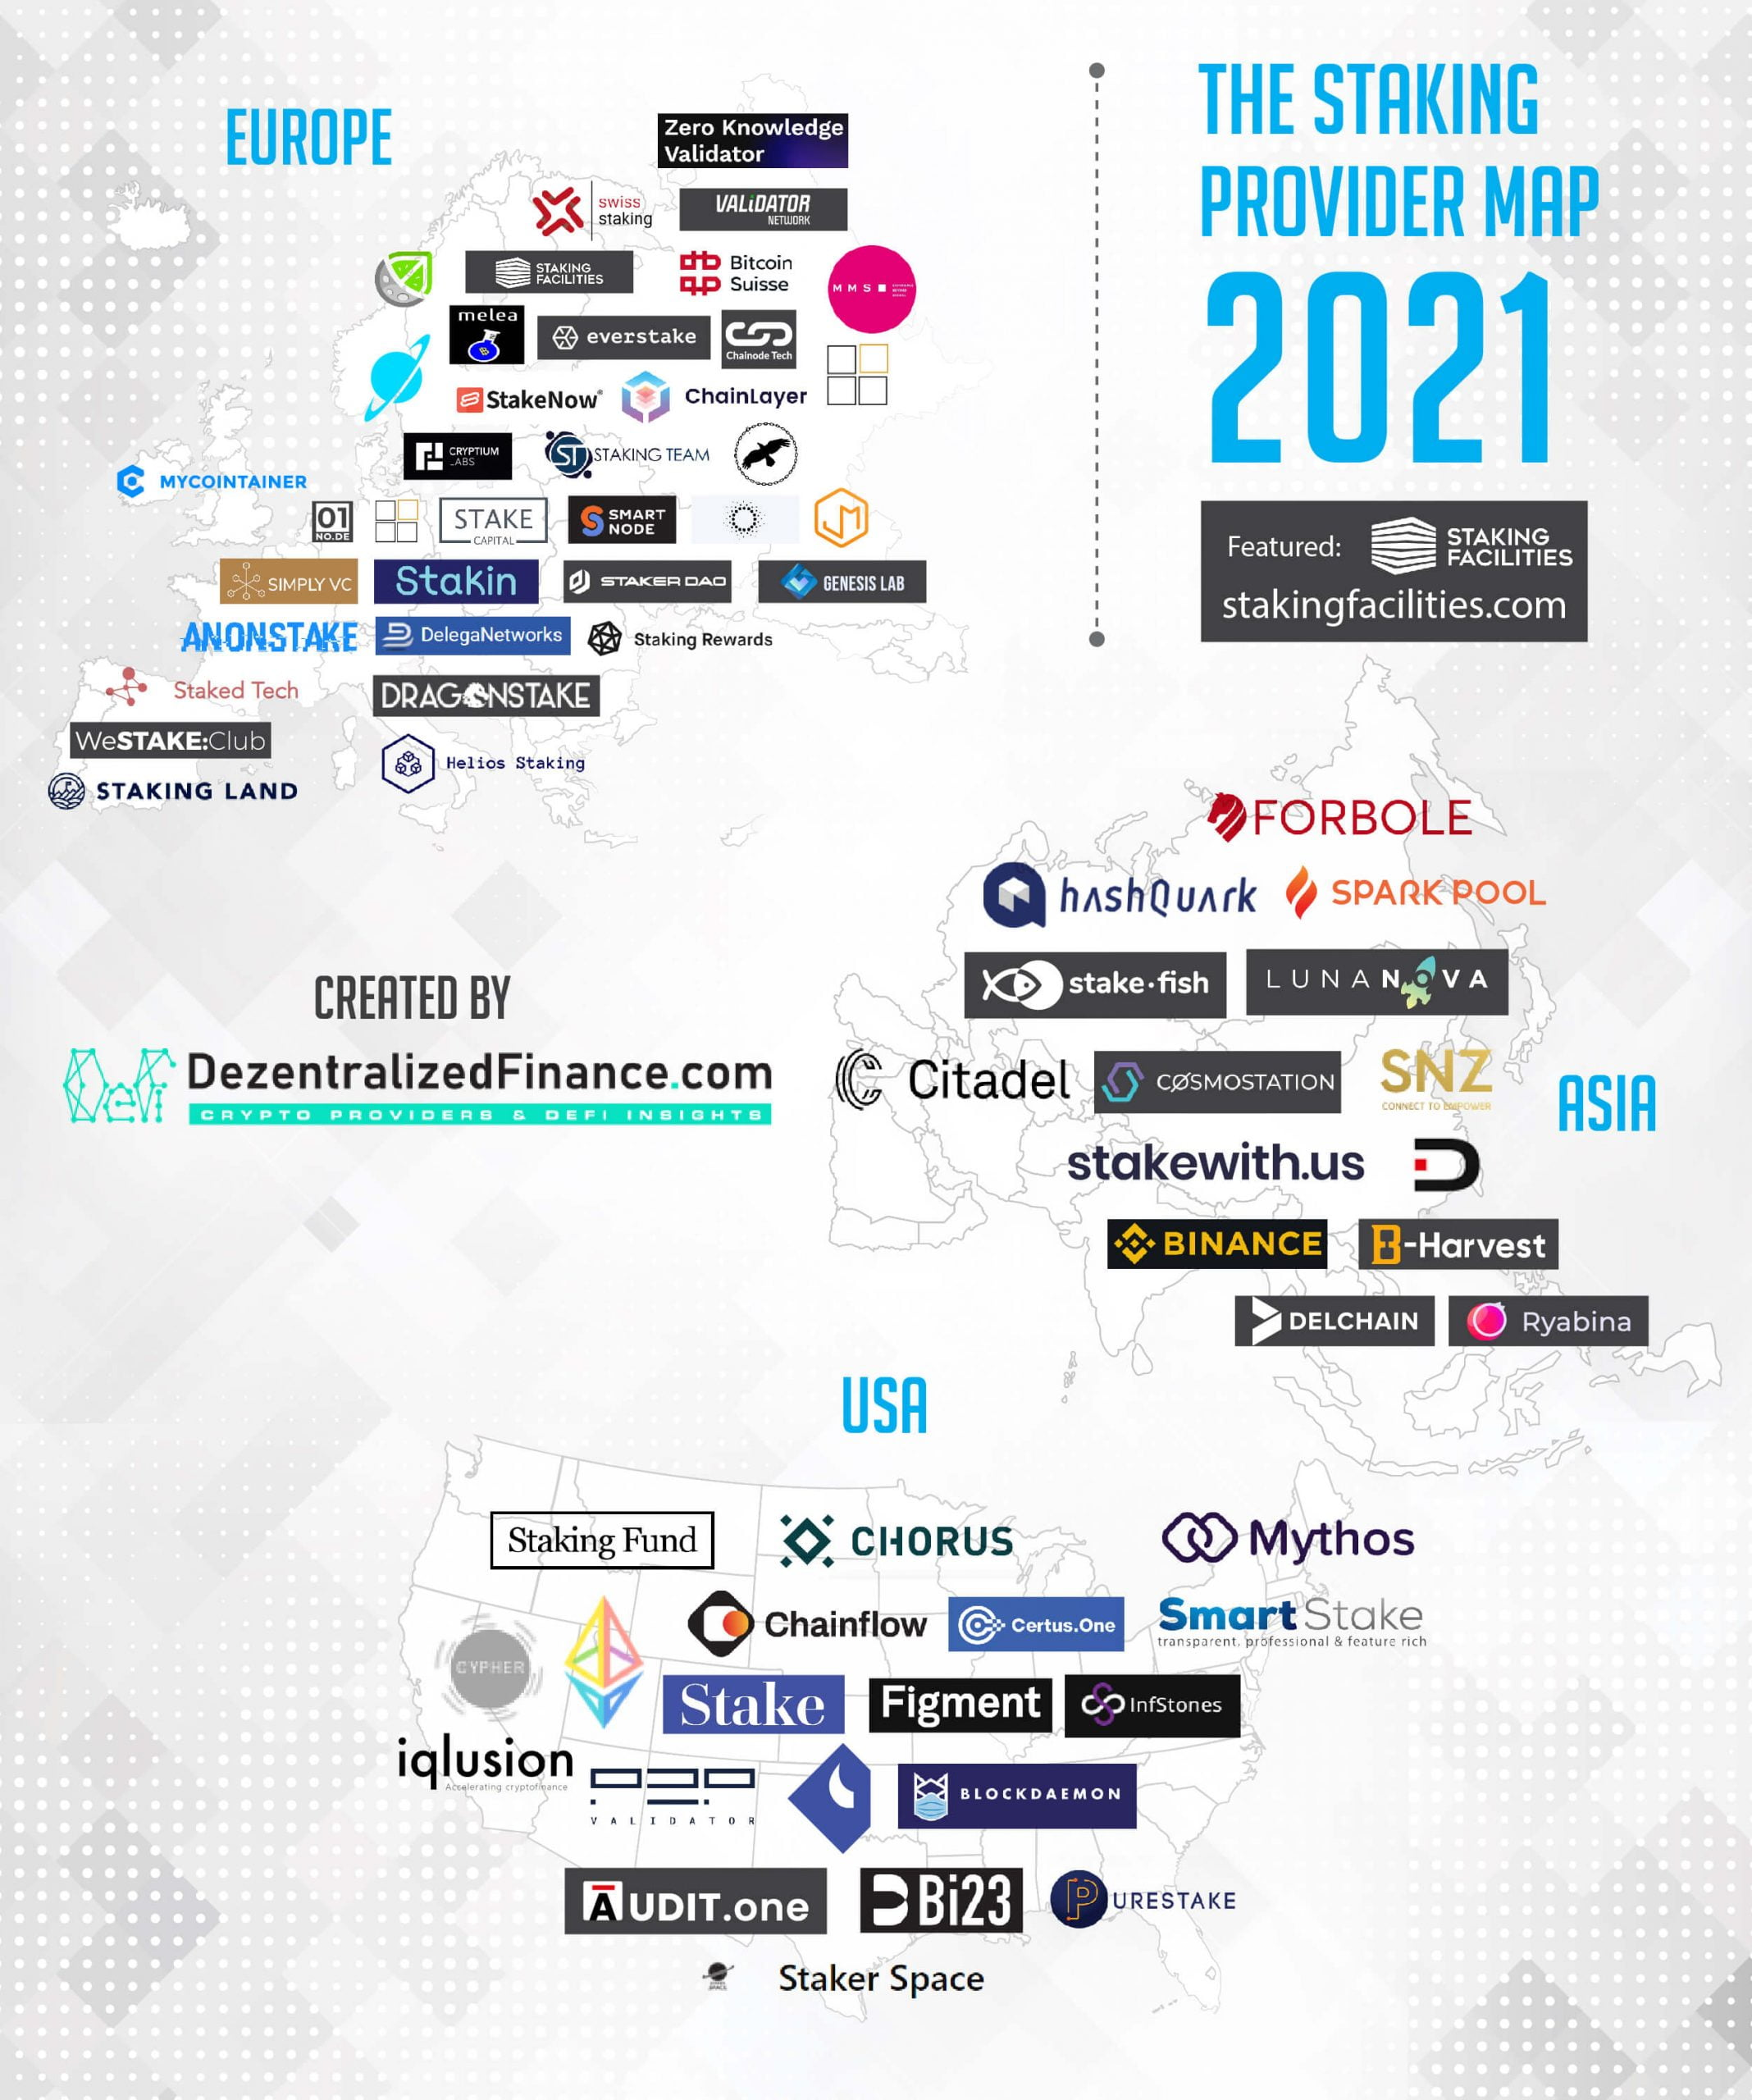 Staking-Providers-map 2021